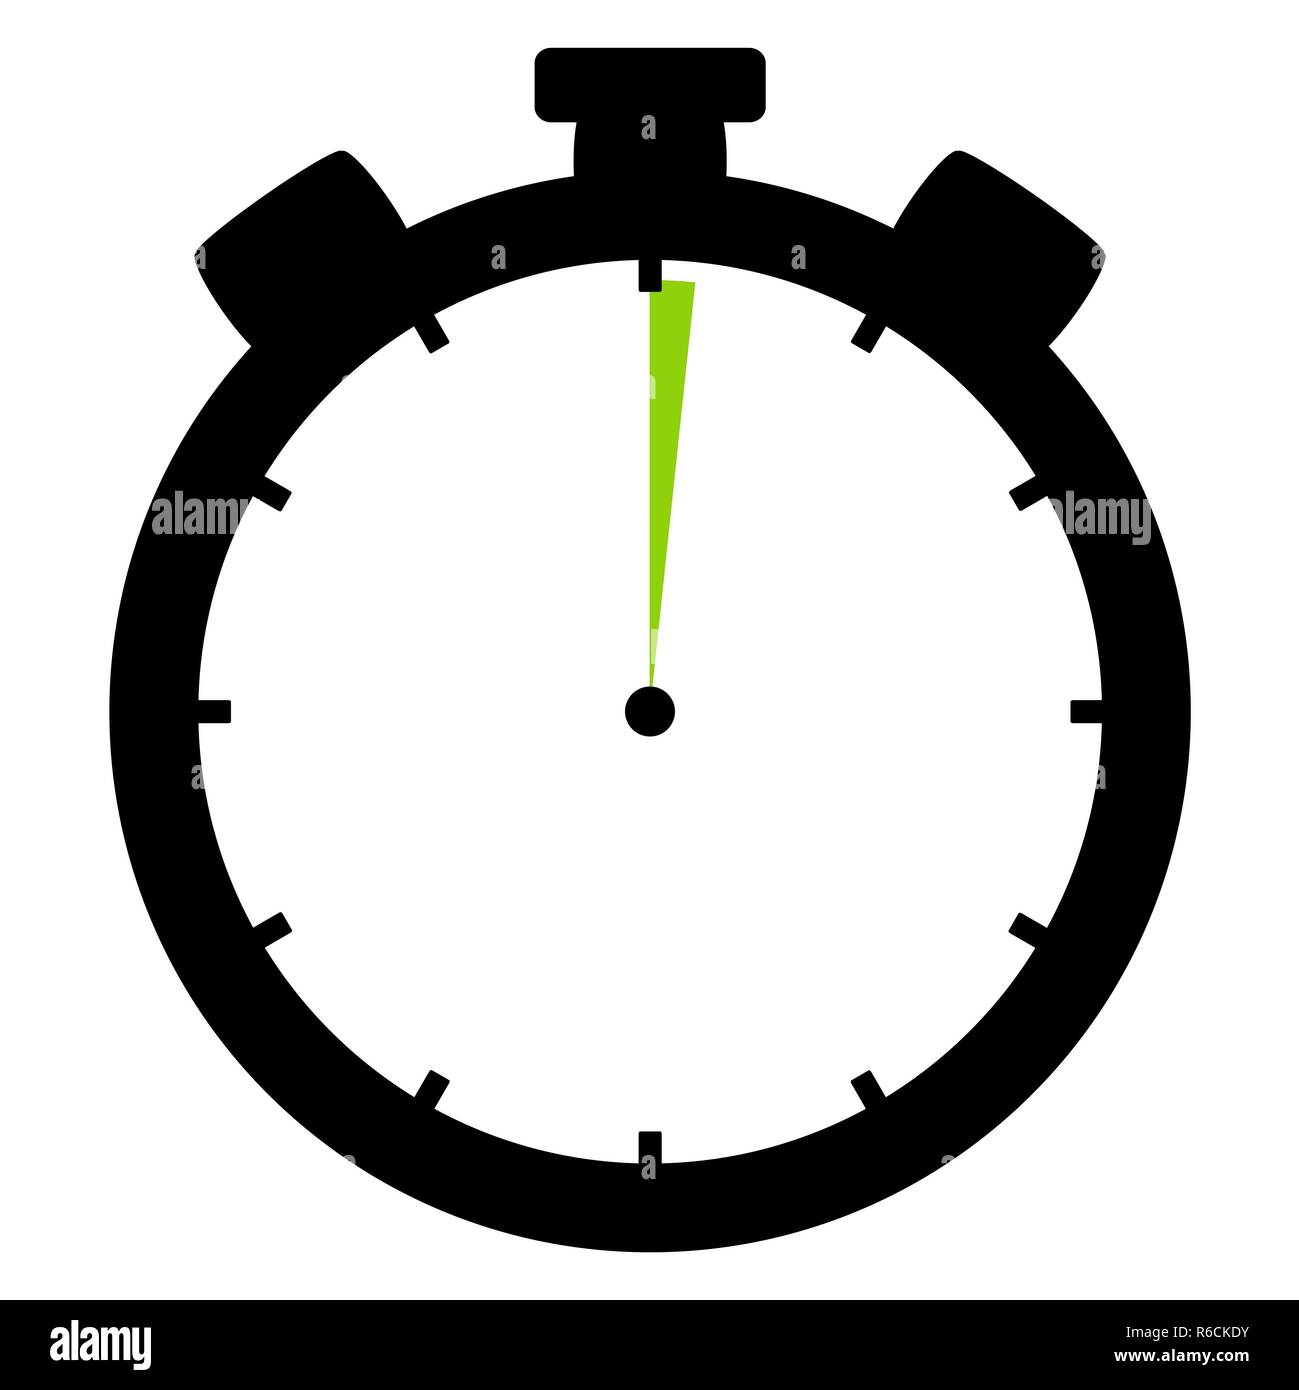 stopwatch icon: 1 minute or 1 second - Stock Image